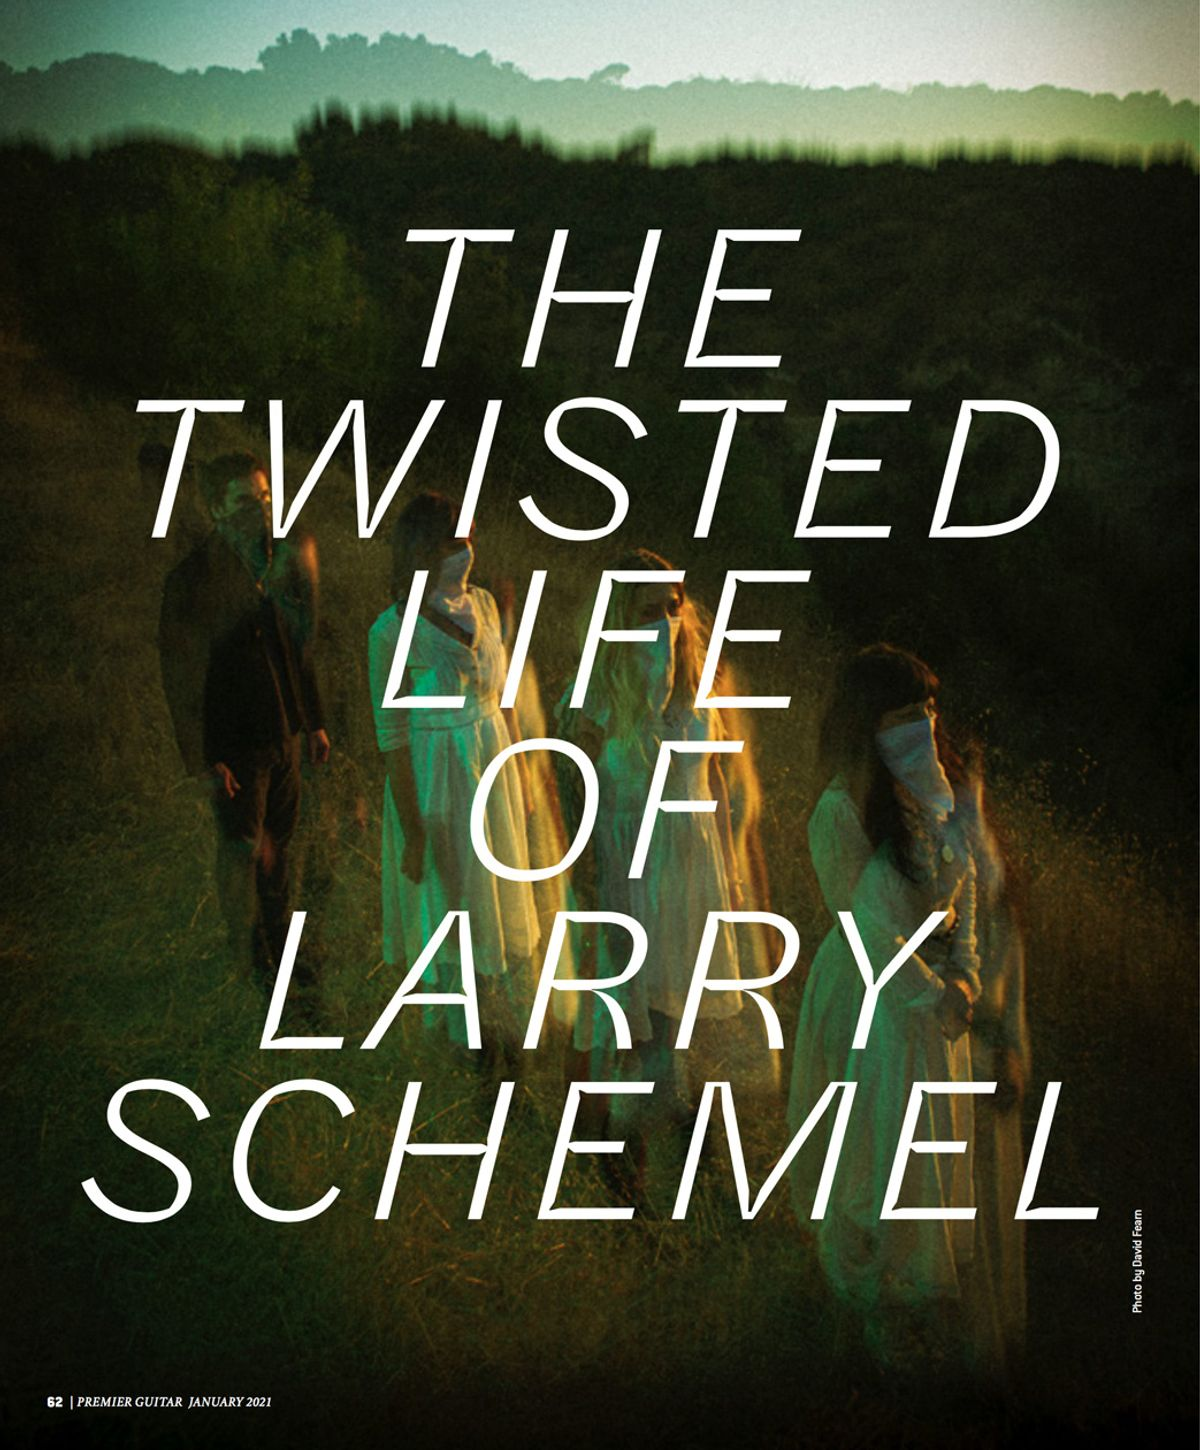 The Twisted Life of Larry Schemel